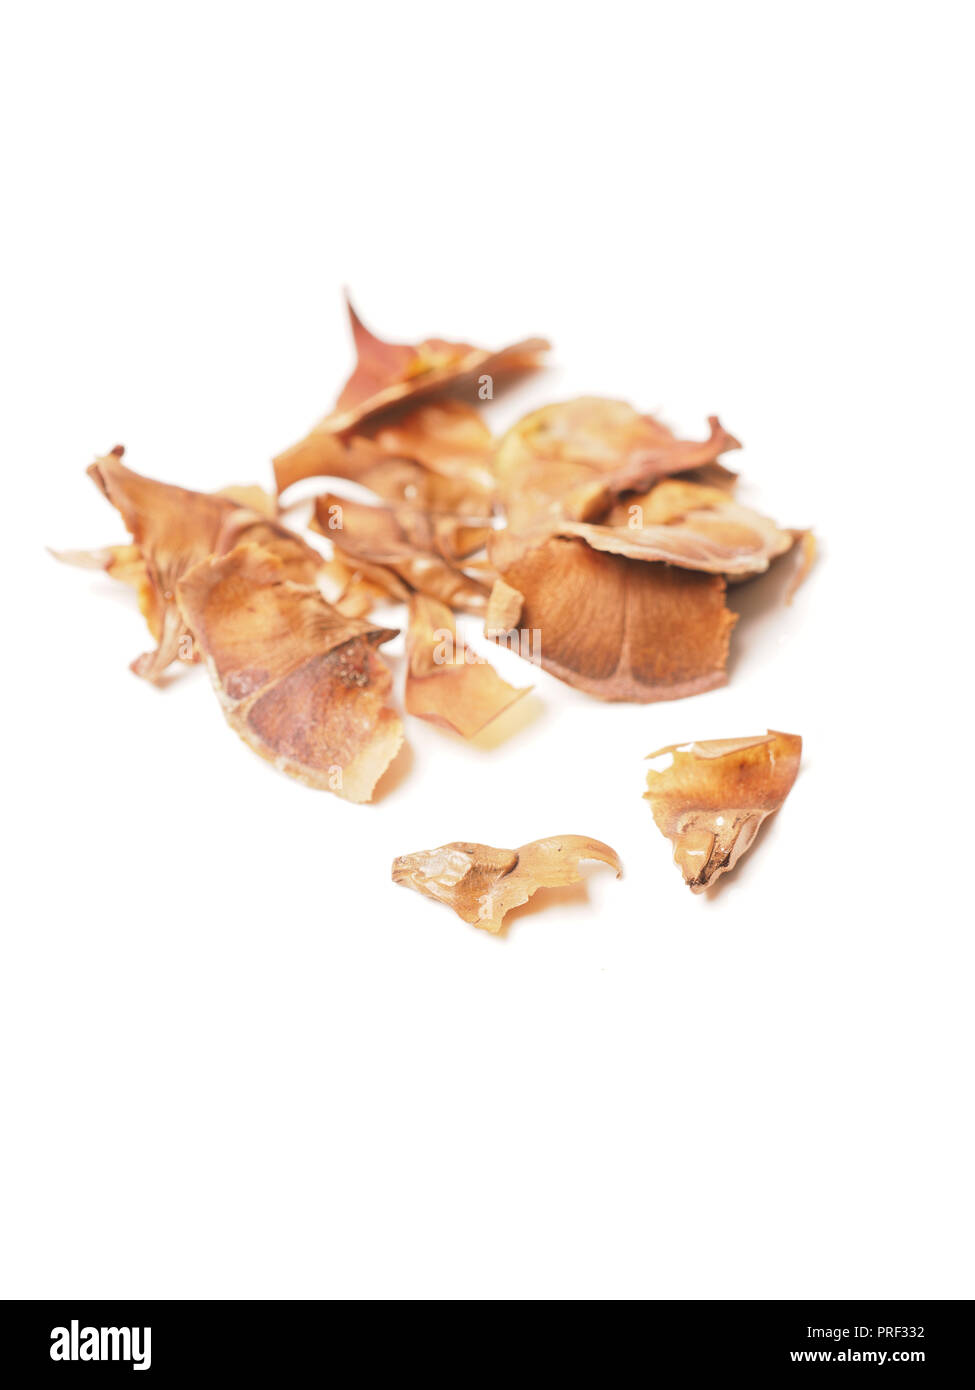 Seeds of a nordmann fir tree on a white table - Stock Image